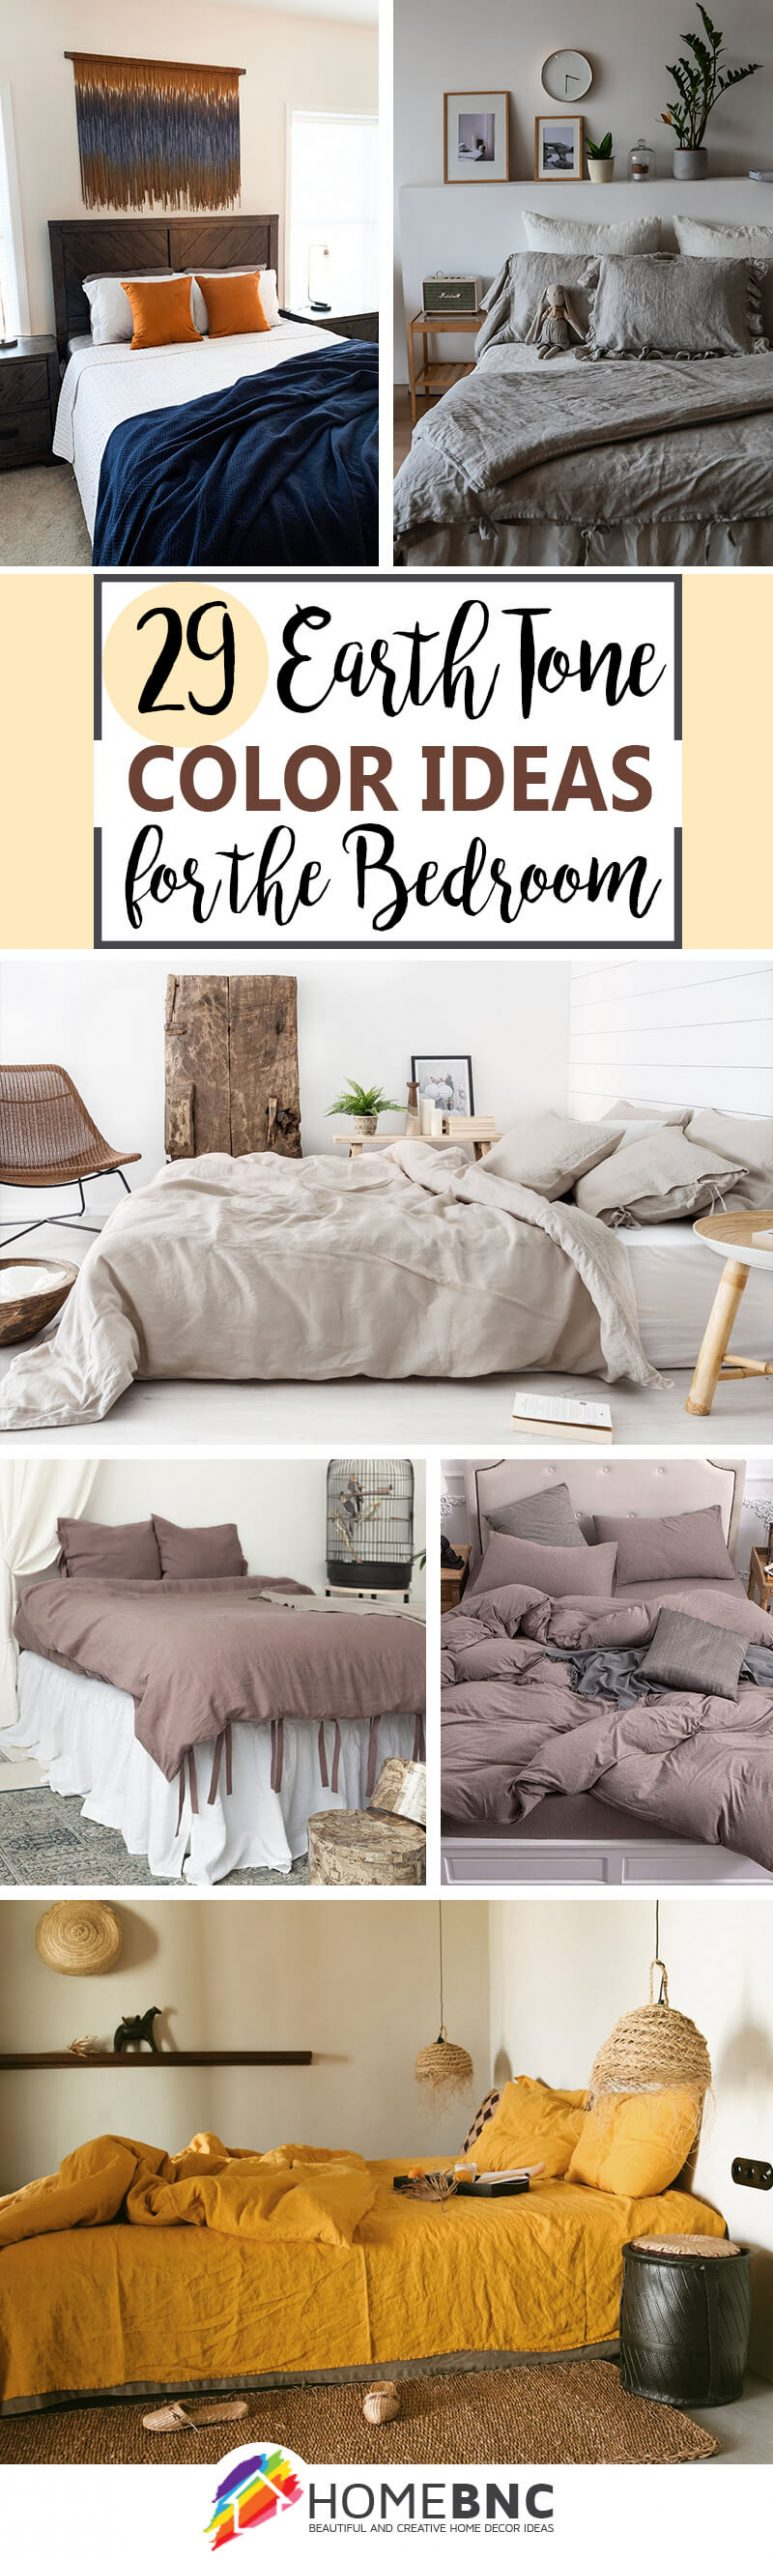 Best Earth Tone Colors for Bedroom